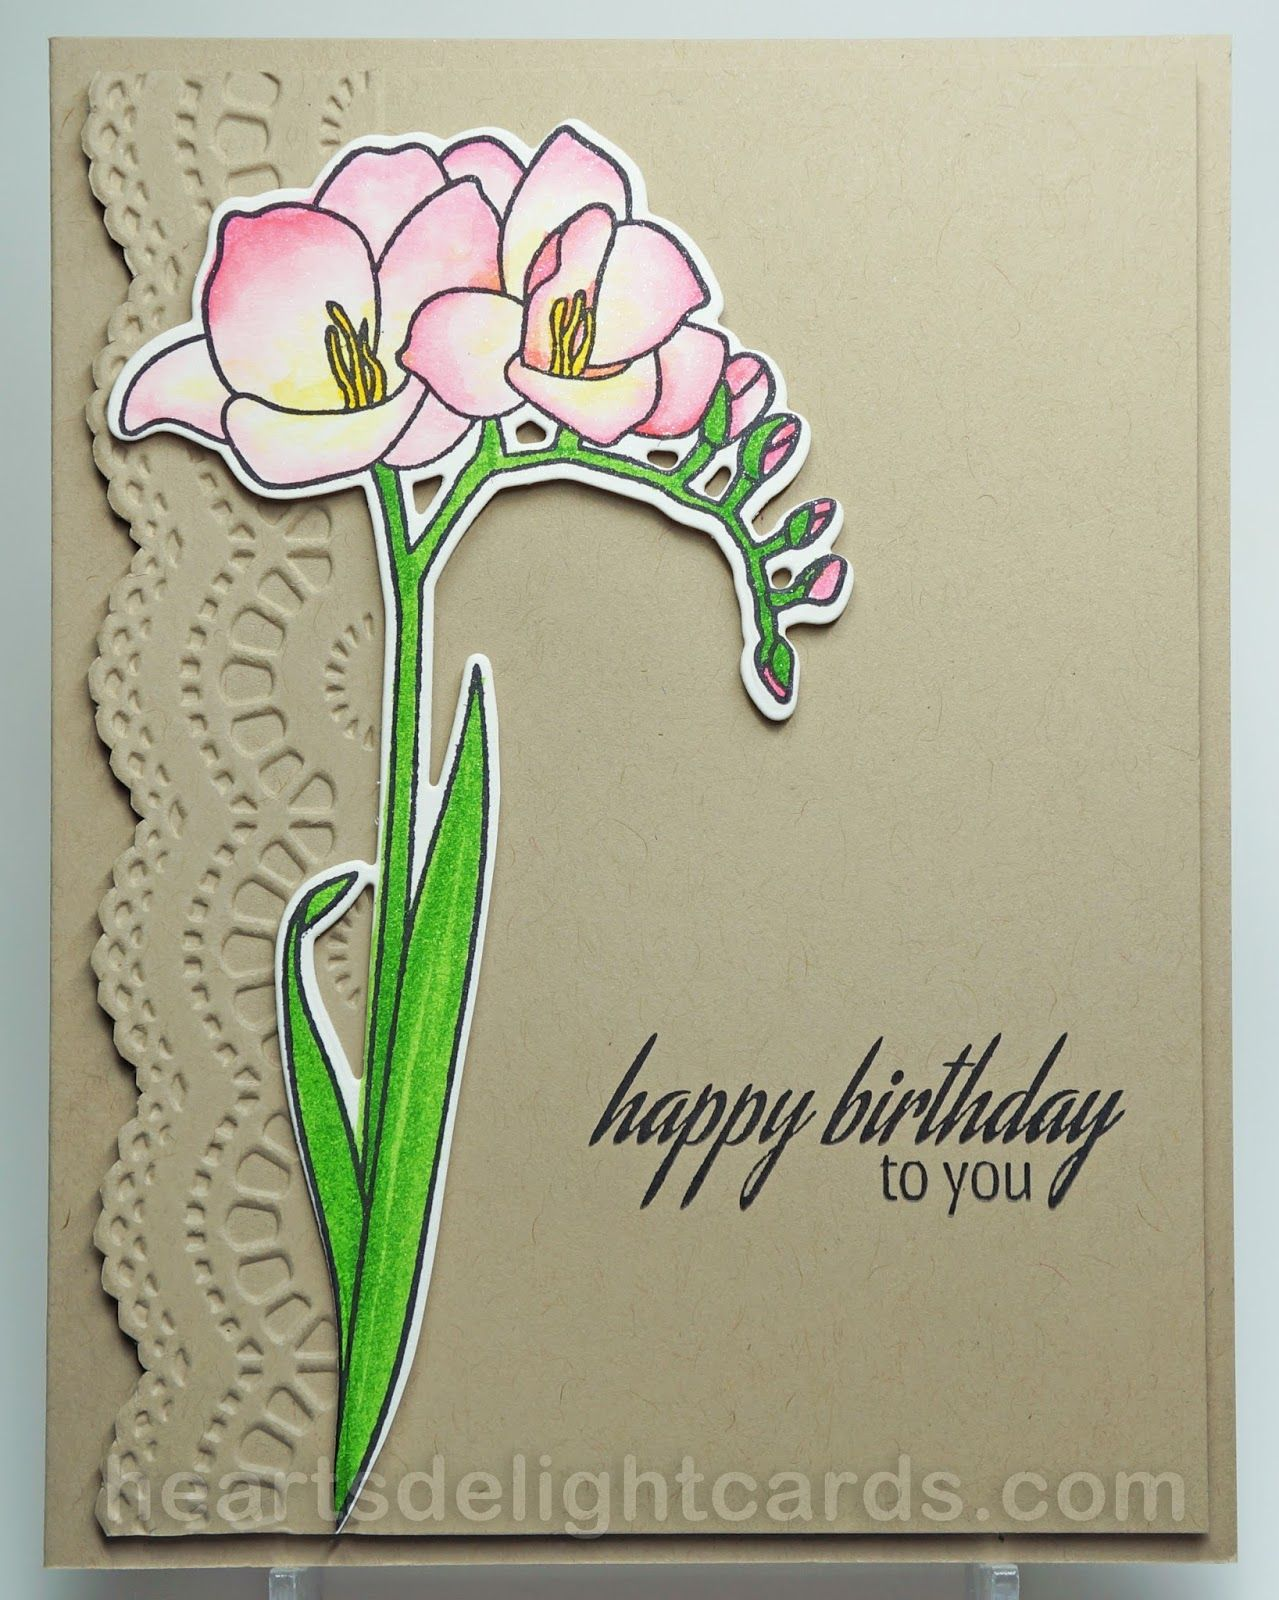 Fresh freesia altenew cards cards and card ideas handmade birthday card from hearts delight cards kraft base with scalloped embossing folder texture and cut gorgeous freesia with equisite coloring izmirmasajfo Images